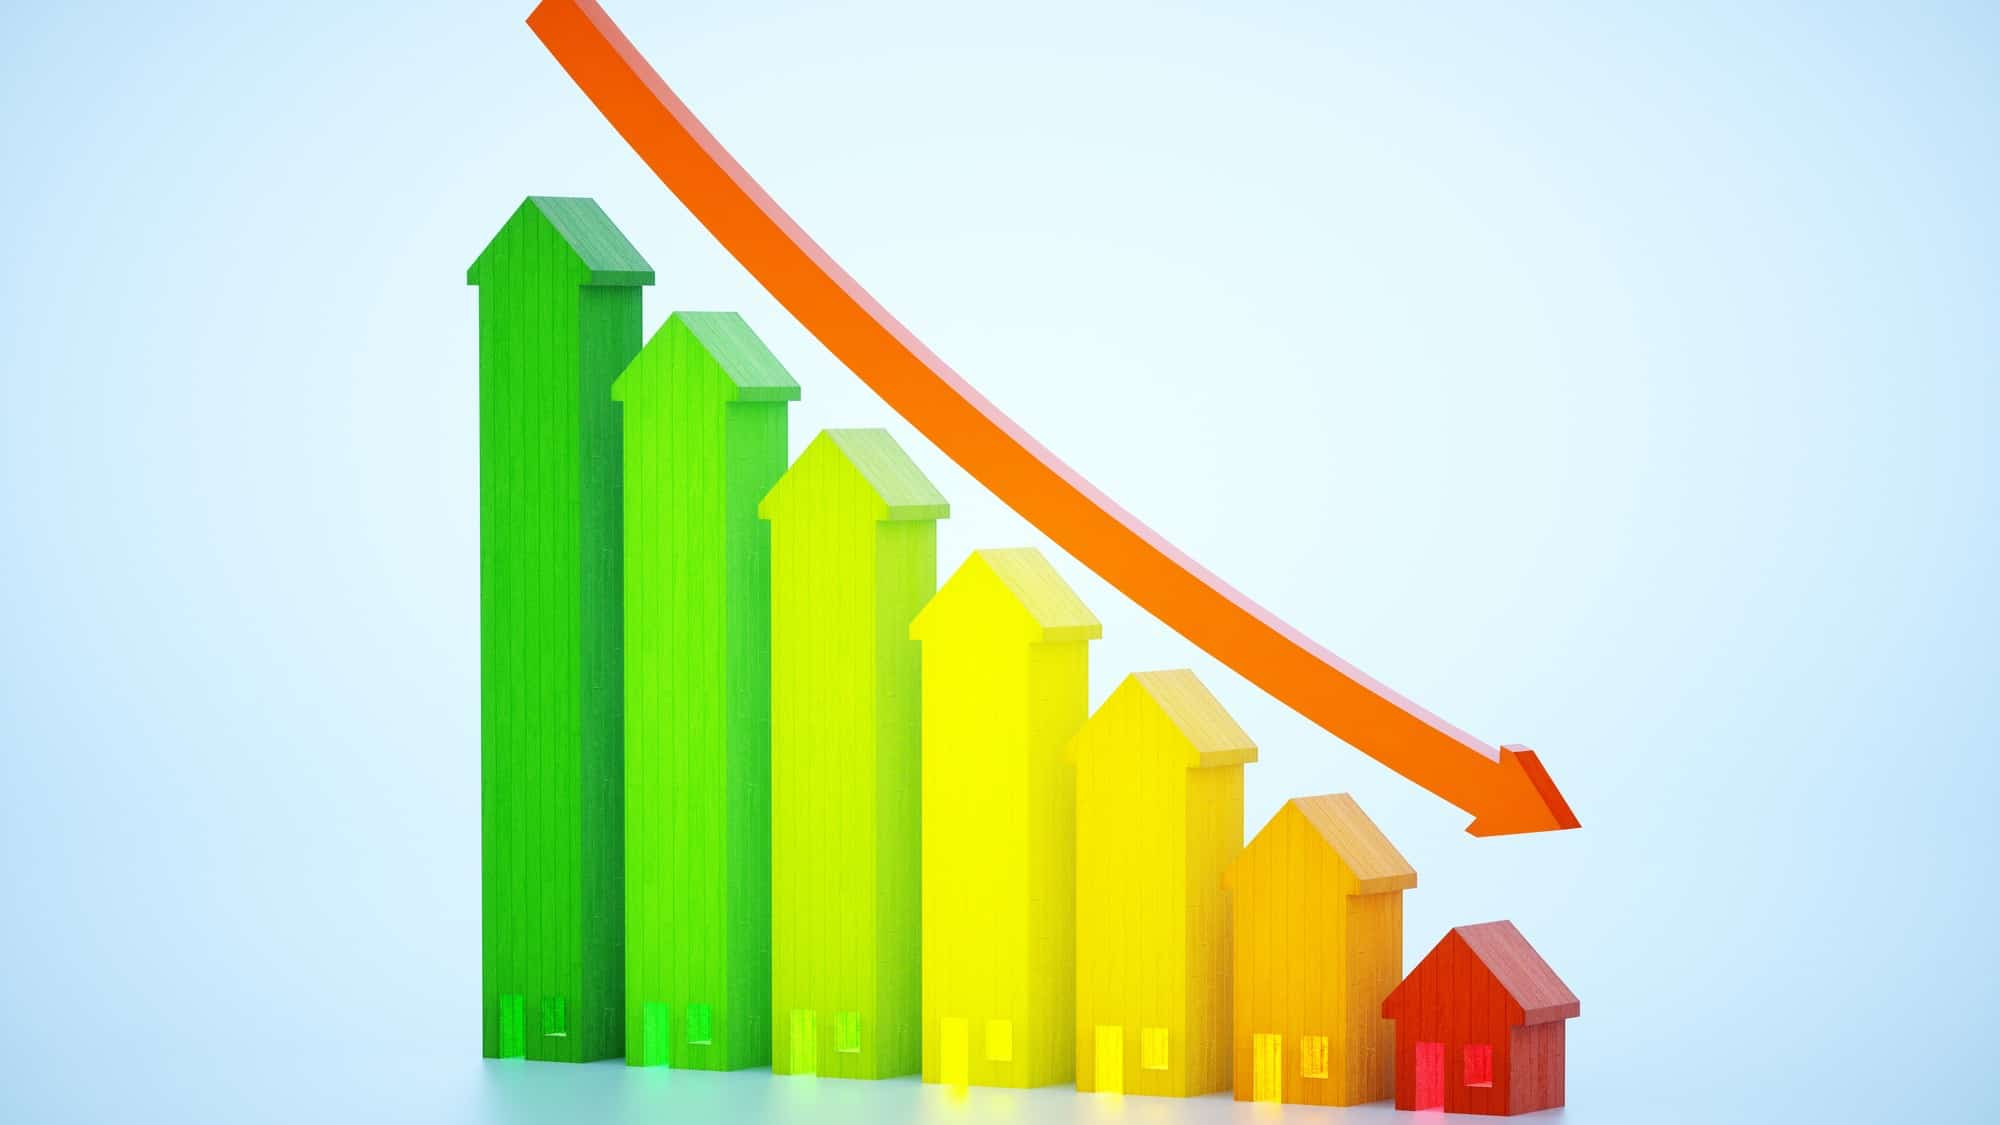 falling bar graph representing house prices and asx share price